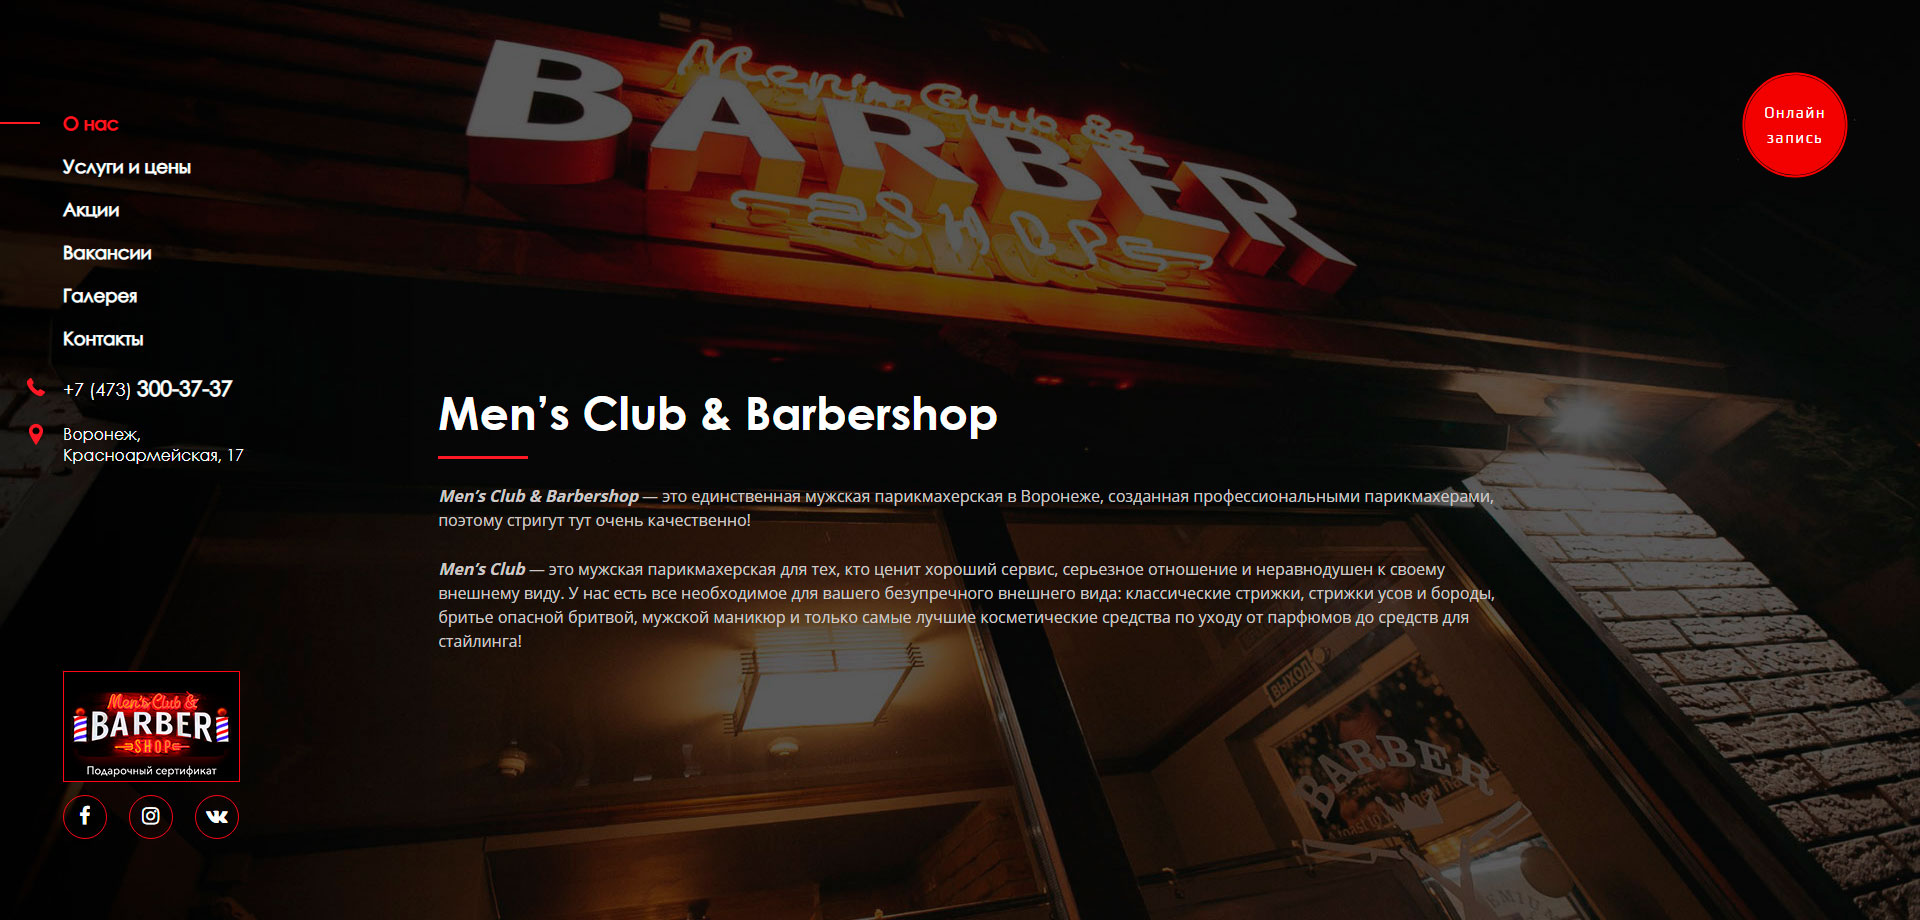 Men's Club & Barbershop 1920 px